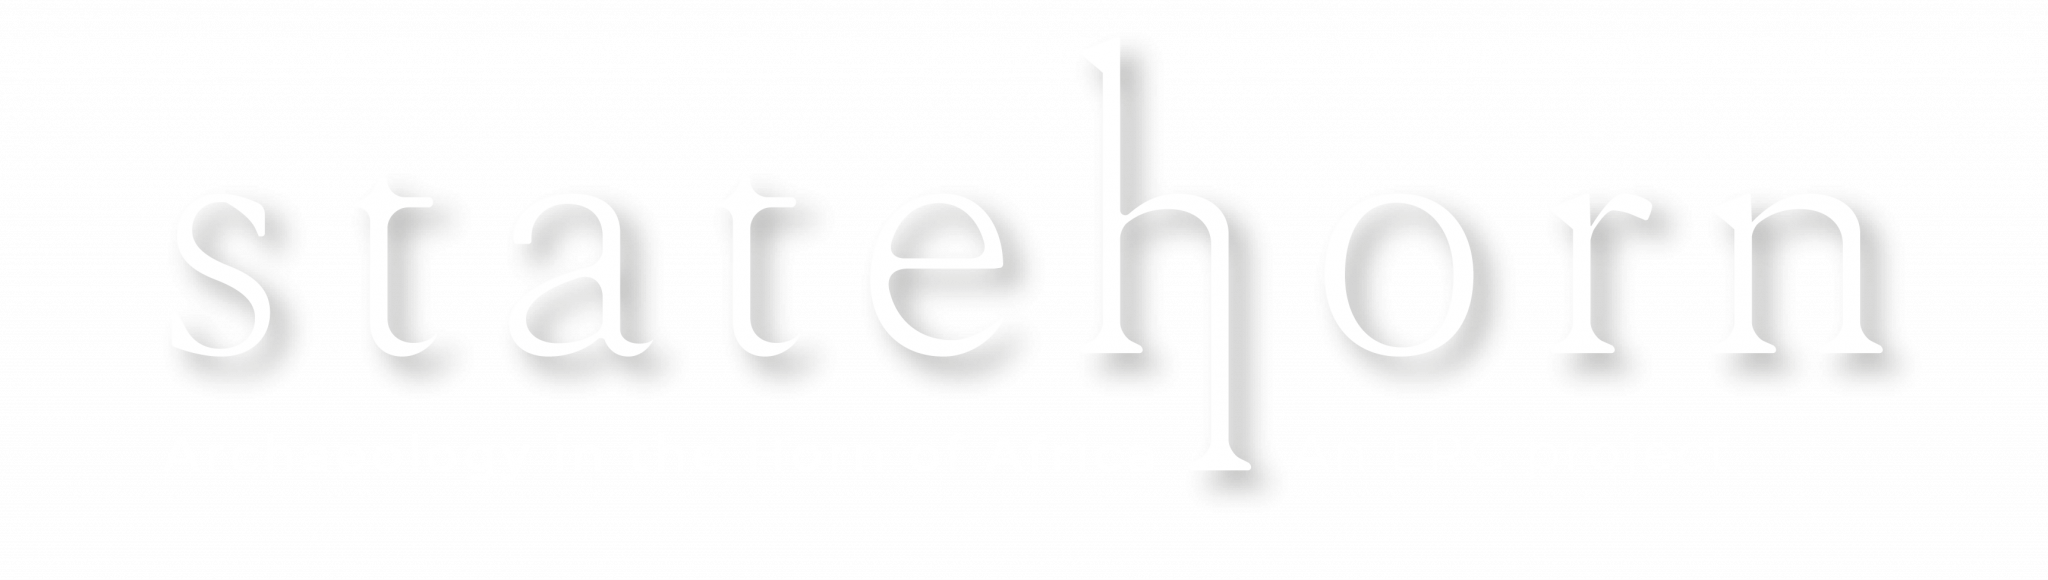 STATEHORN Archaeology erc project